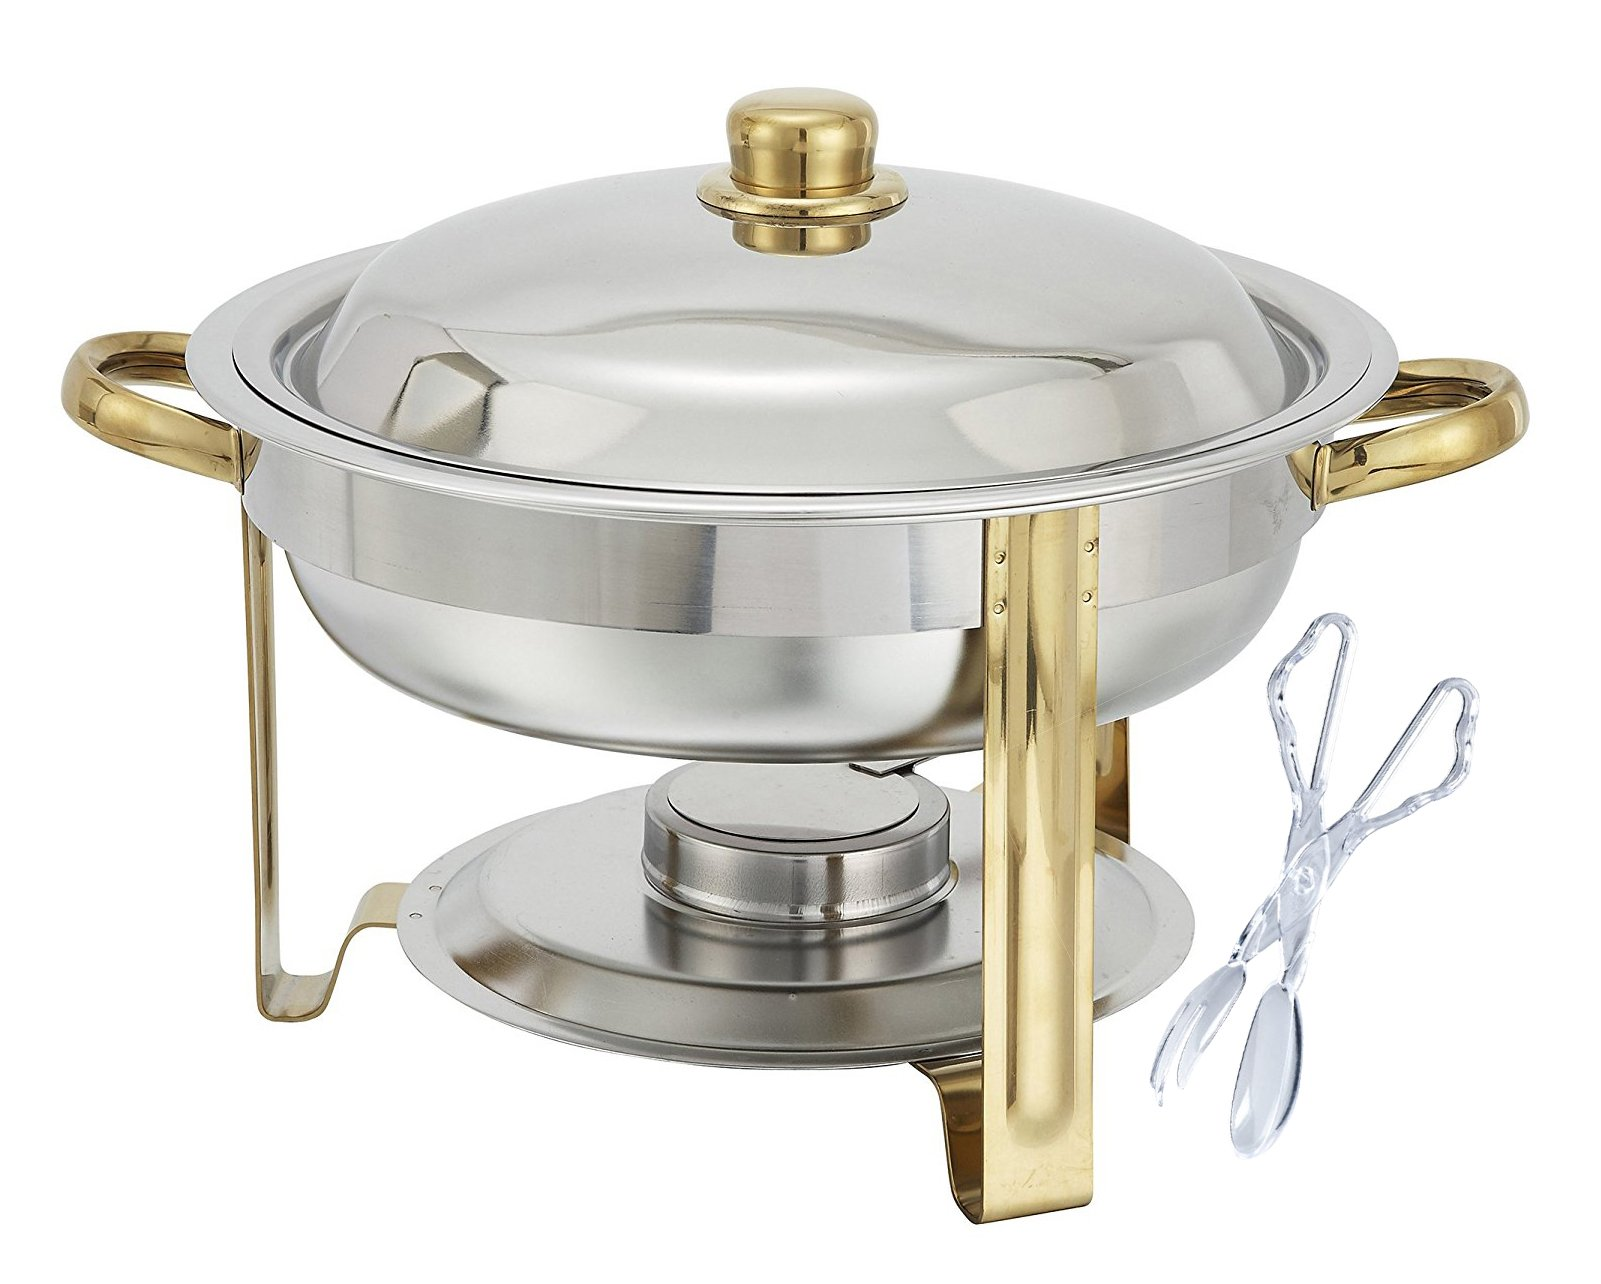 Tiger Chef 4 Quart Round Chafing Dish Buffet Warmer Set, Gold Accented Chafer, Includes a Plastic Tong by Tiger Chef